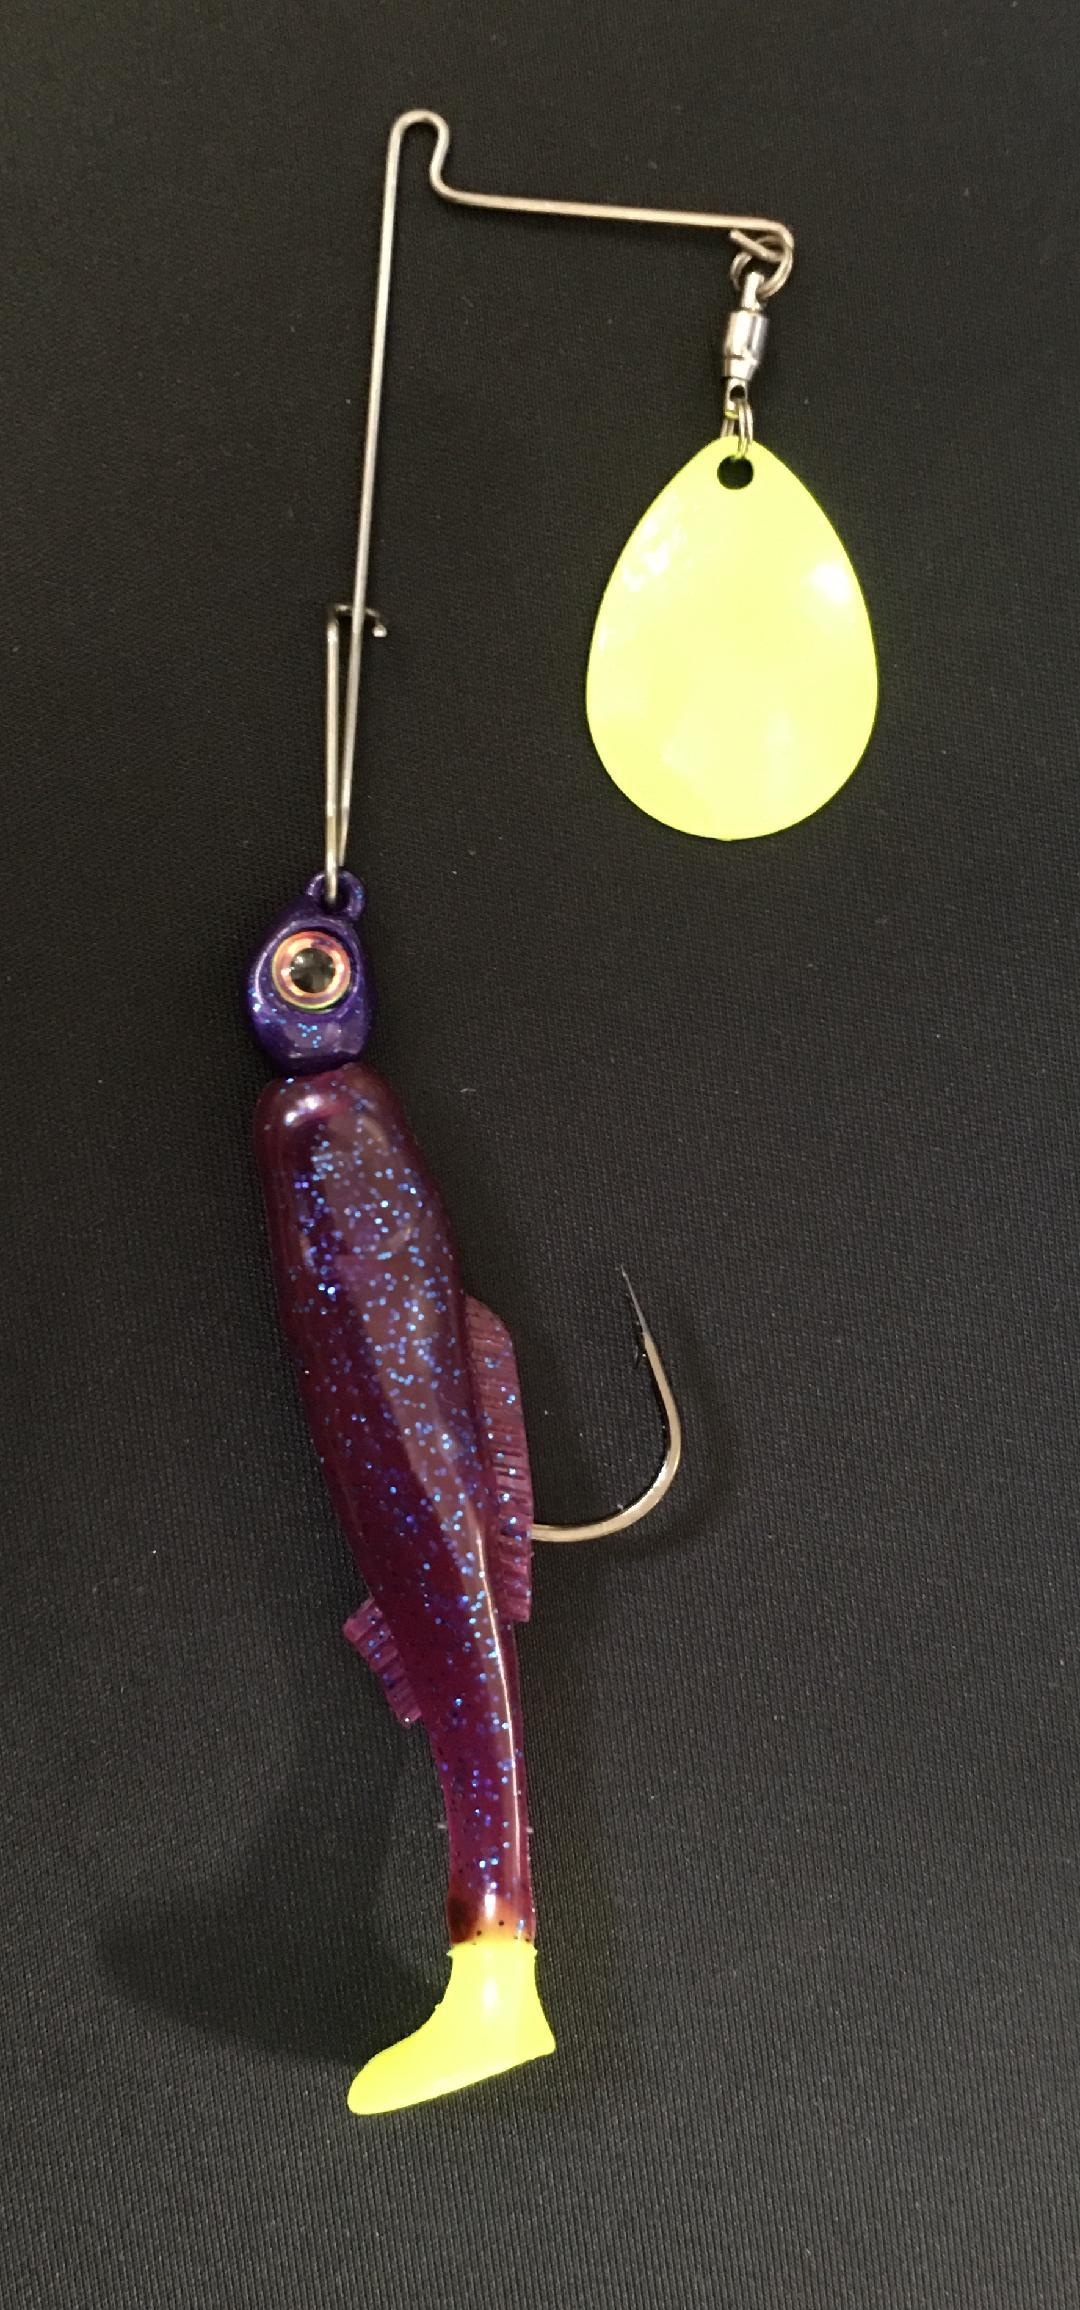 1/4 oz Purple / Blue Glitter / Chart Tail - Kajun Boss Outdoors